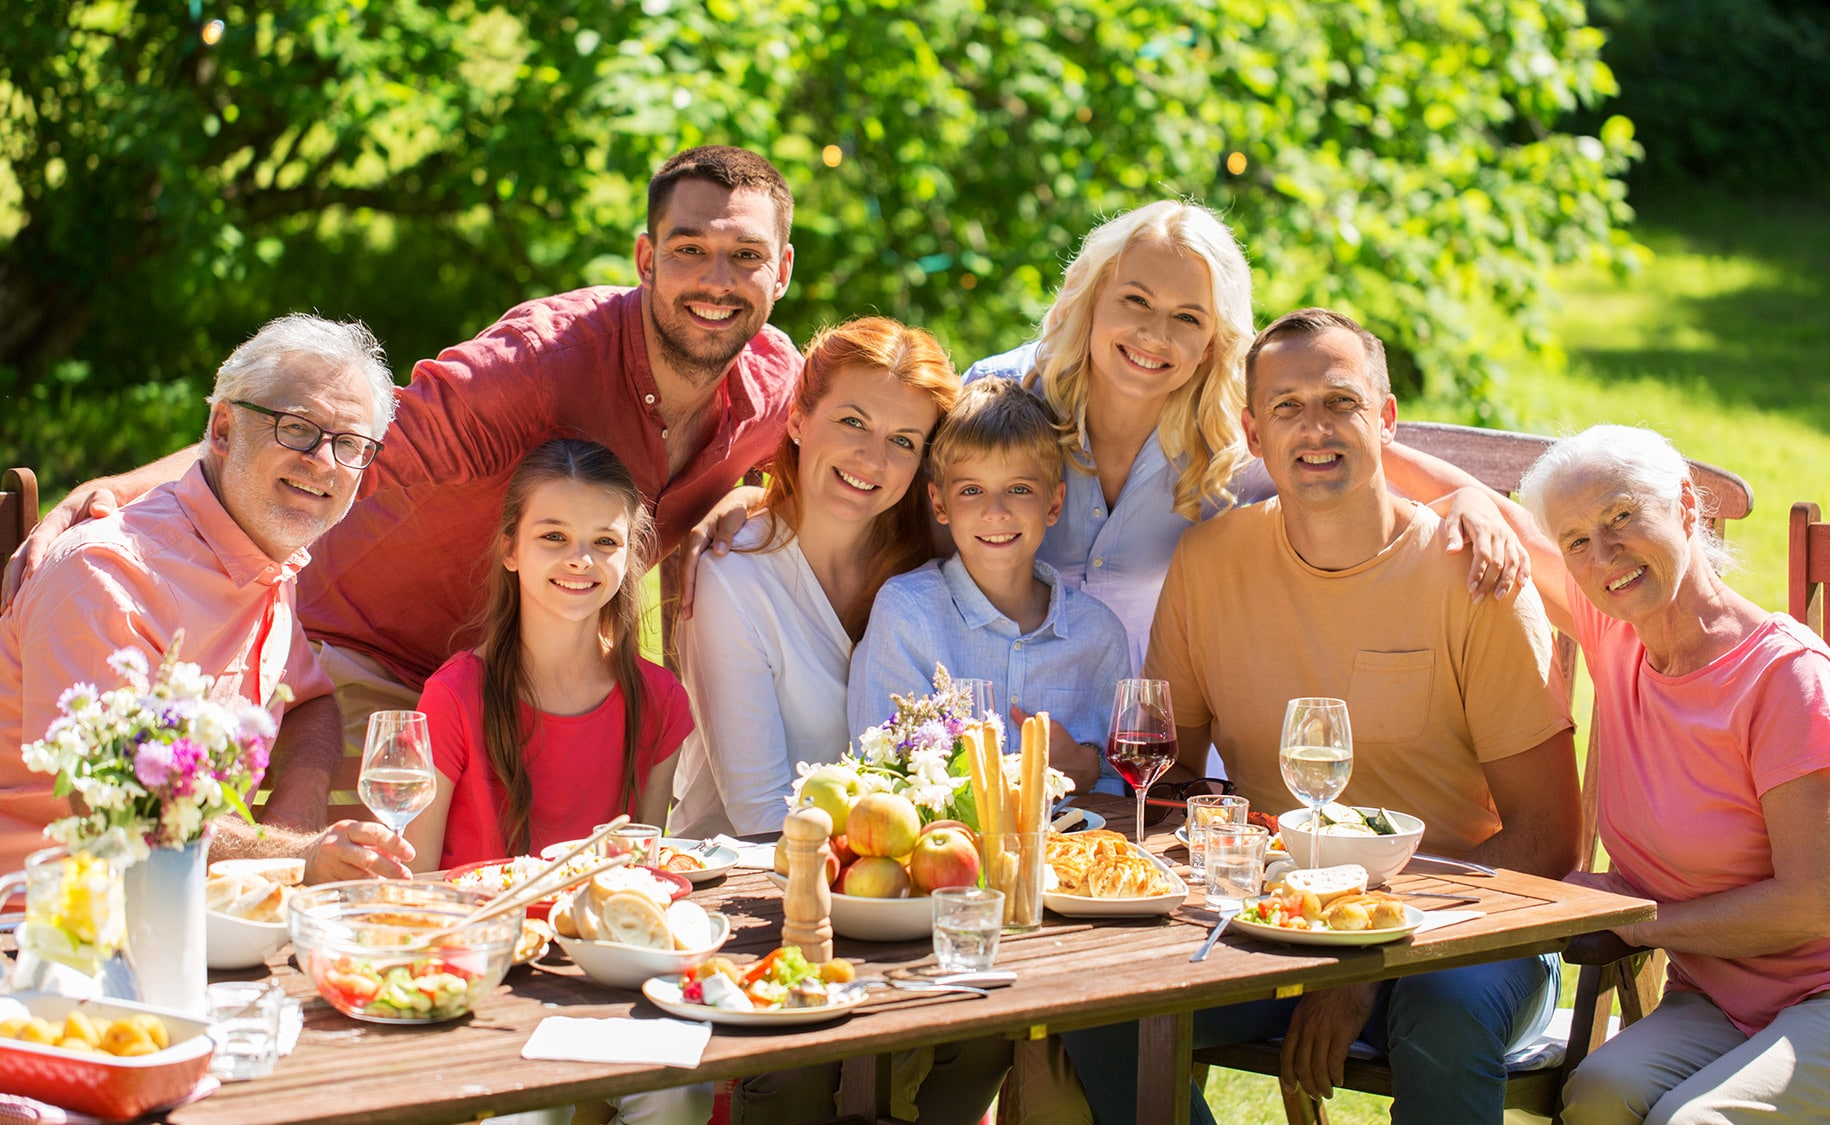 A multi-generational family, happily toasting over an outdoor lunch